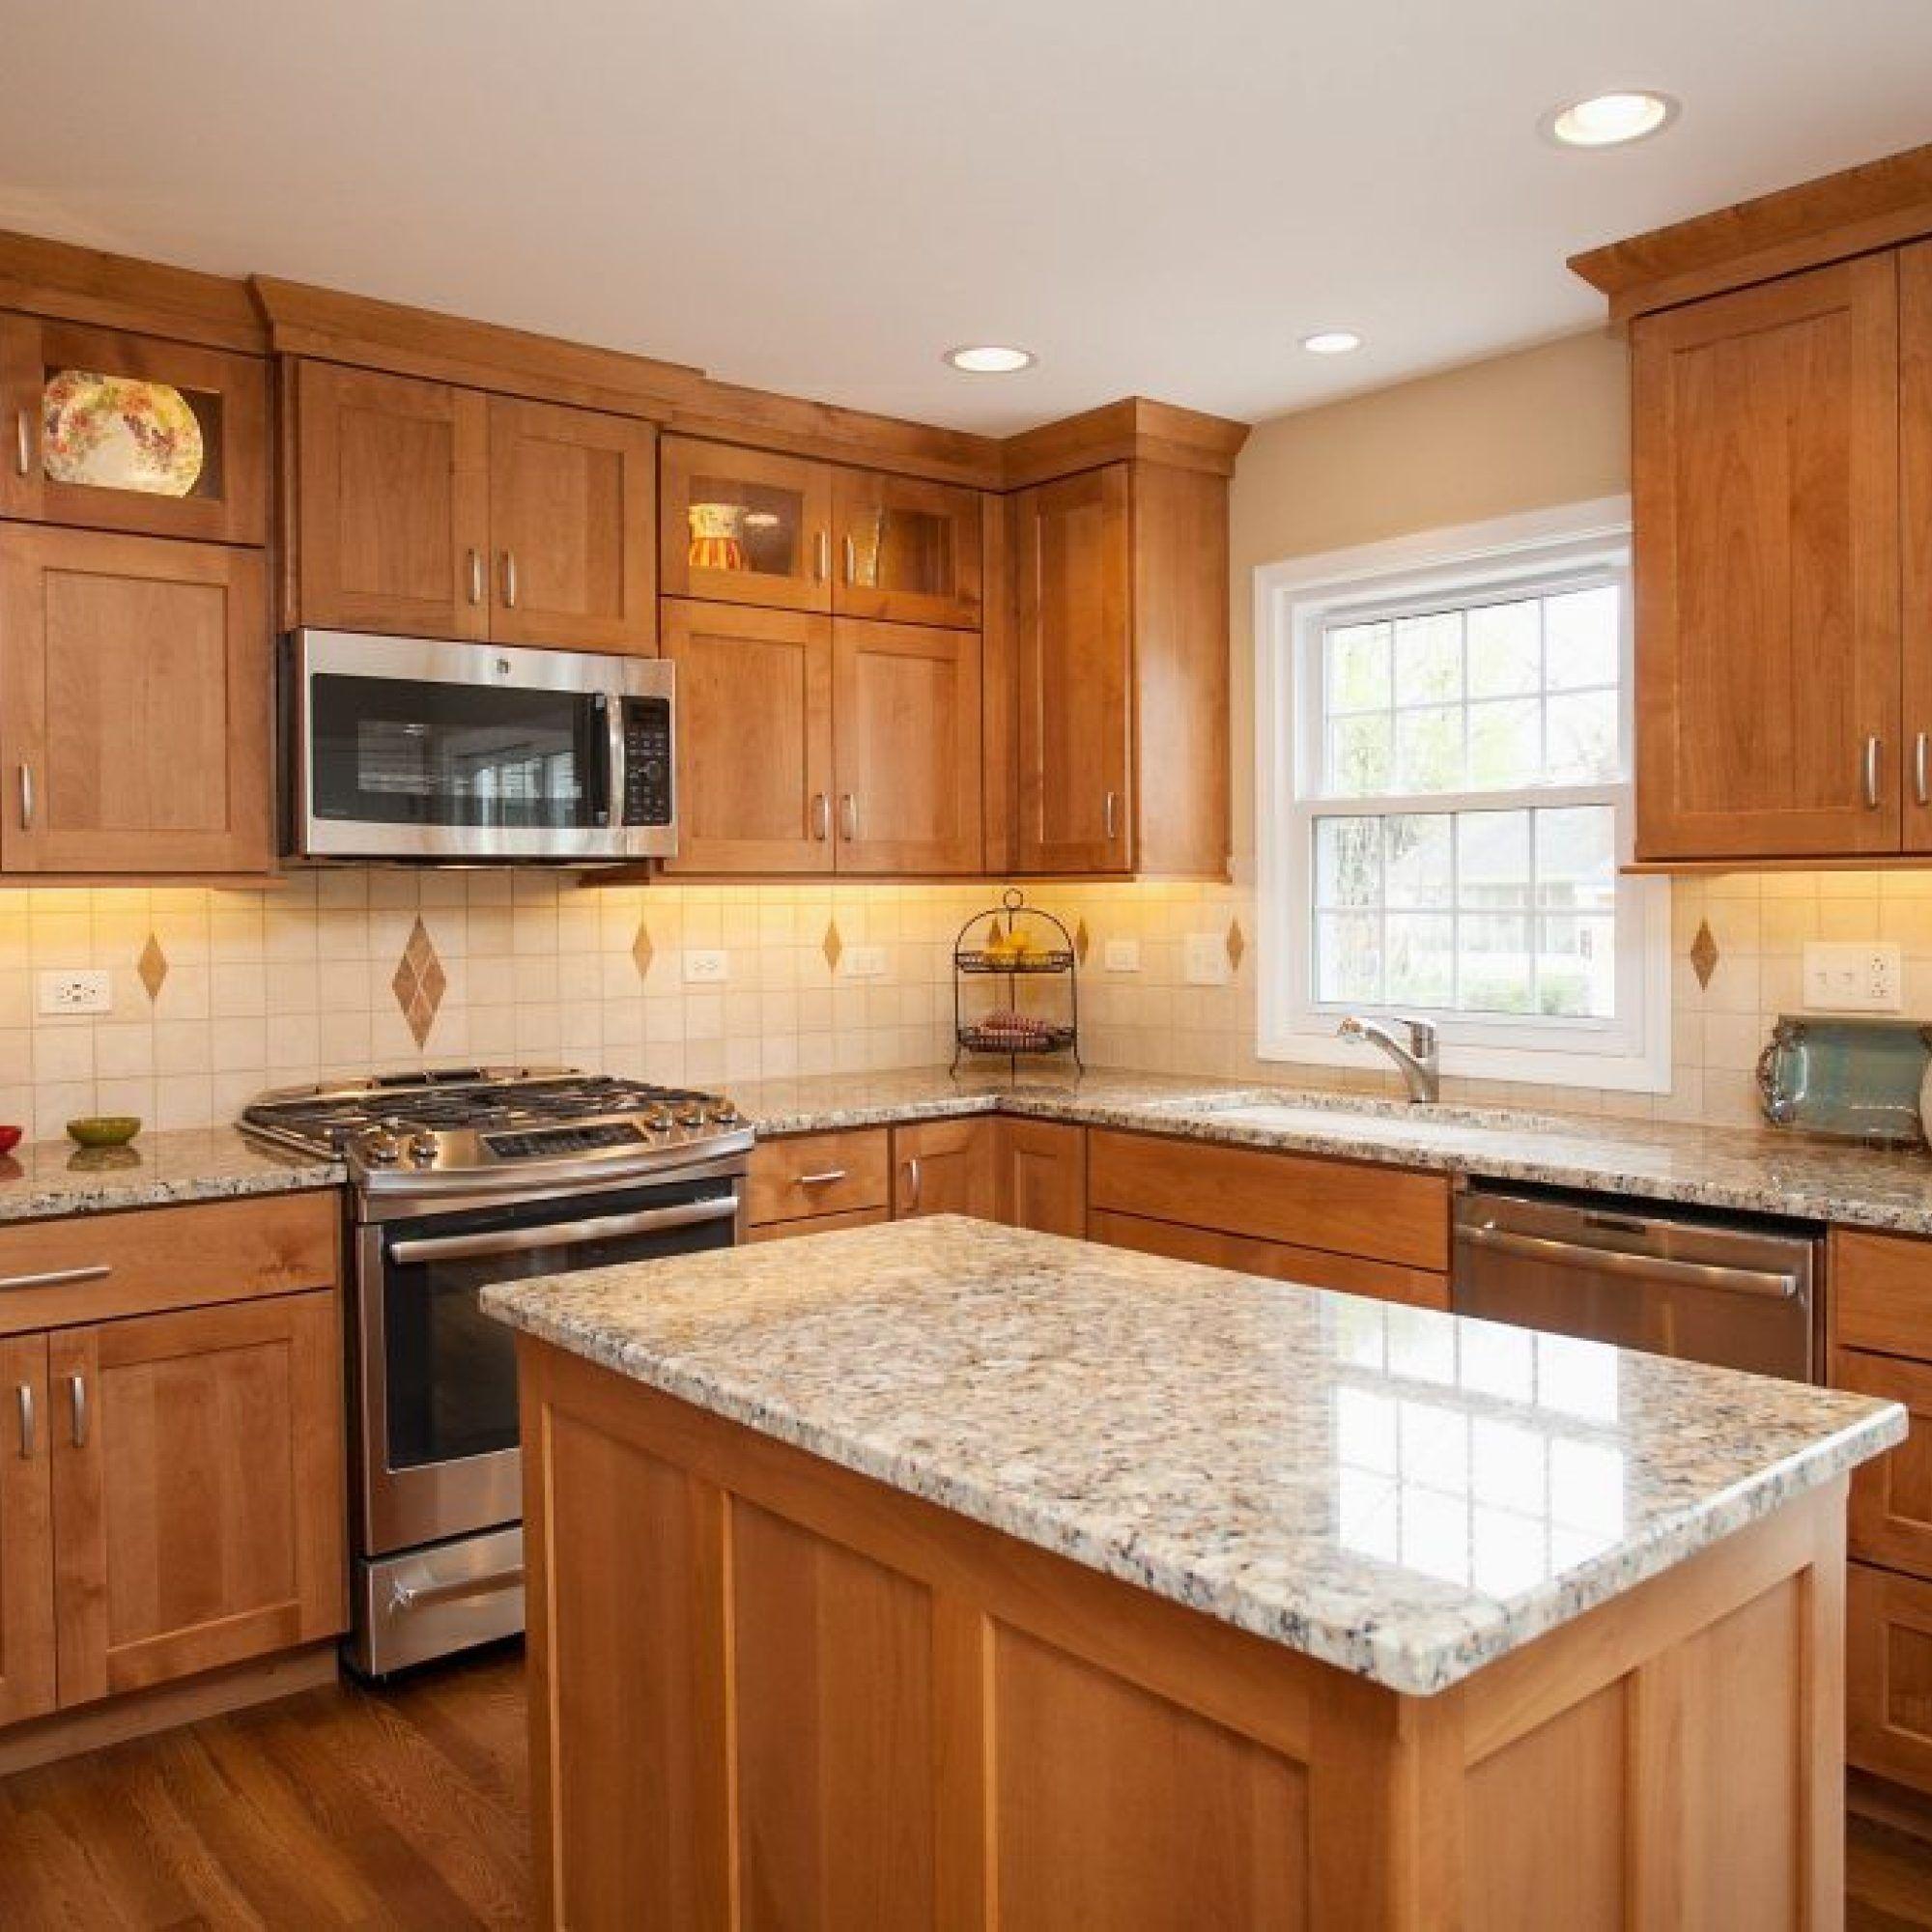 30 The Biggest Myth About Oak Cabinet Kitchen Ideas Countertops